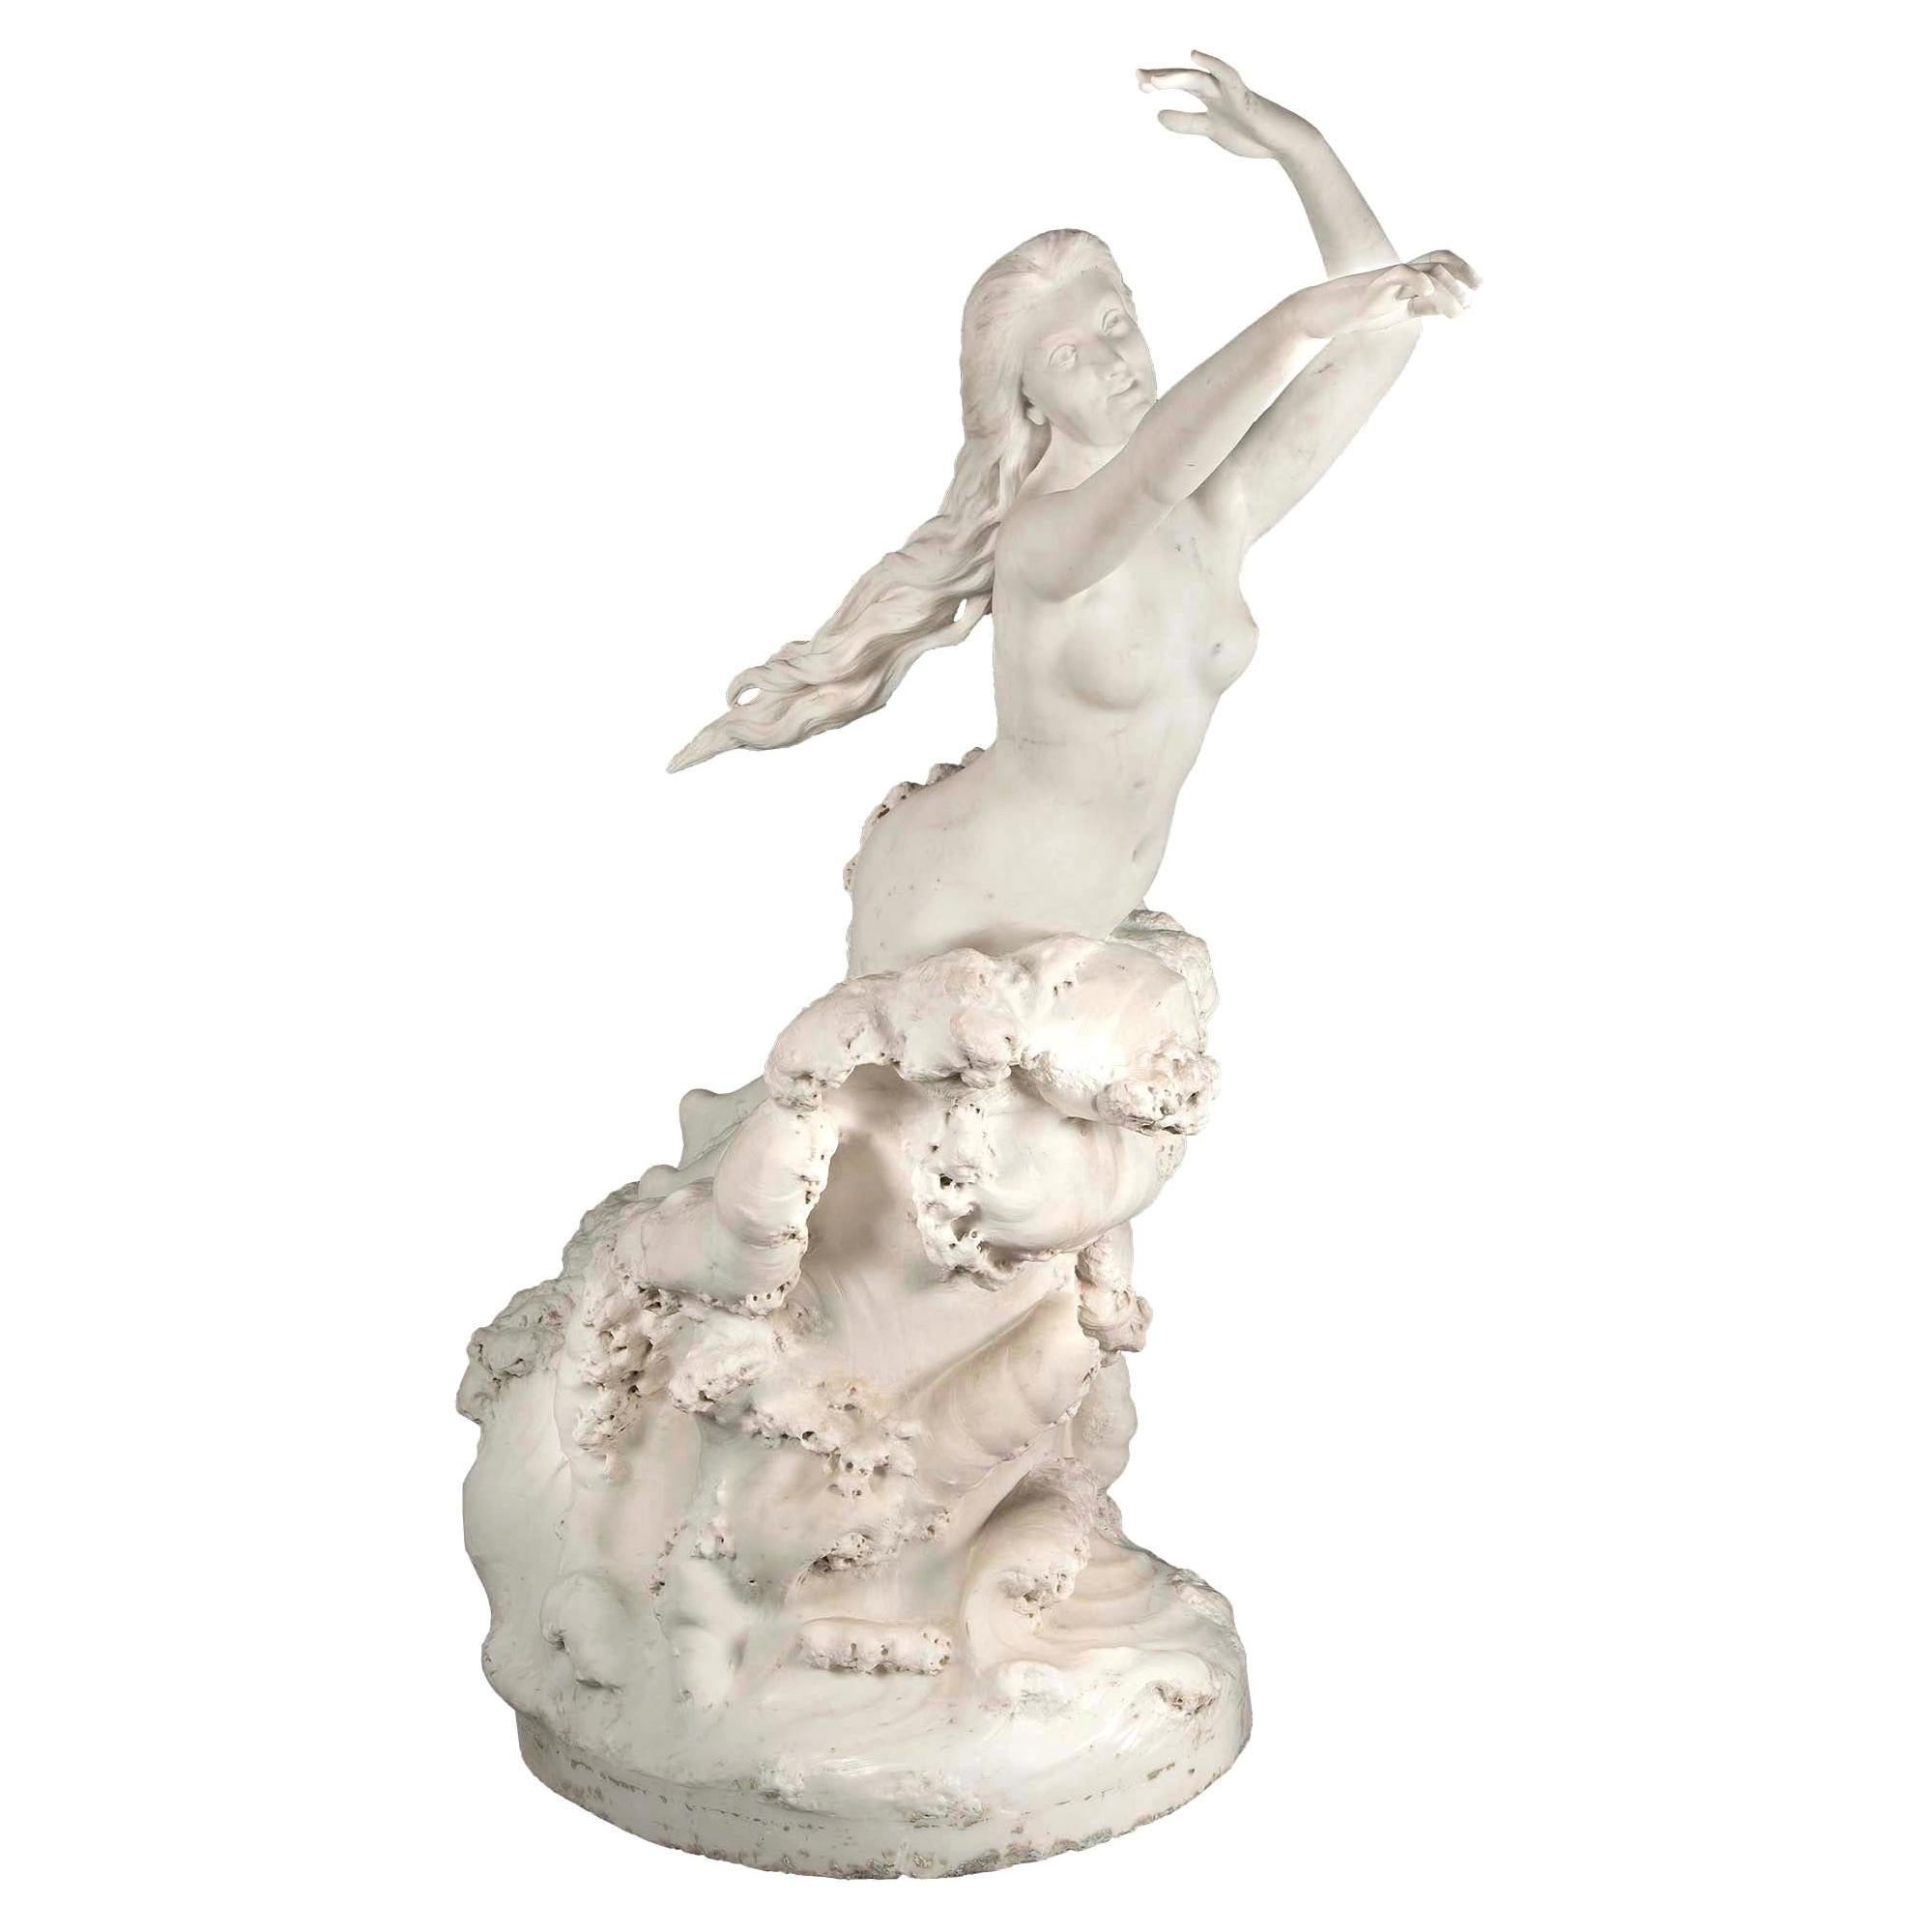 French 19th Century White Carrara Marble Statue, Signed E. Damé, 1892